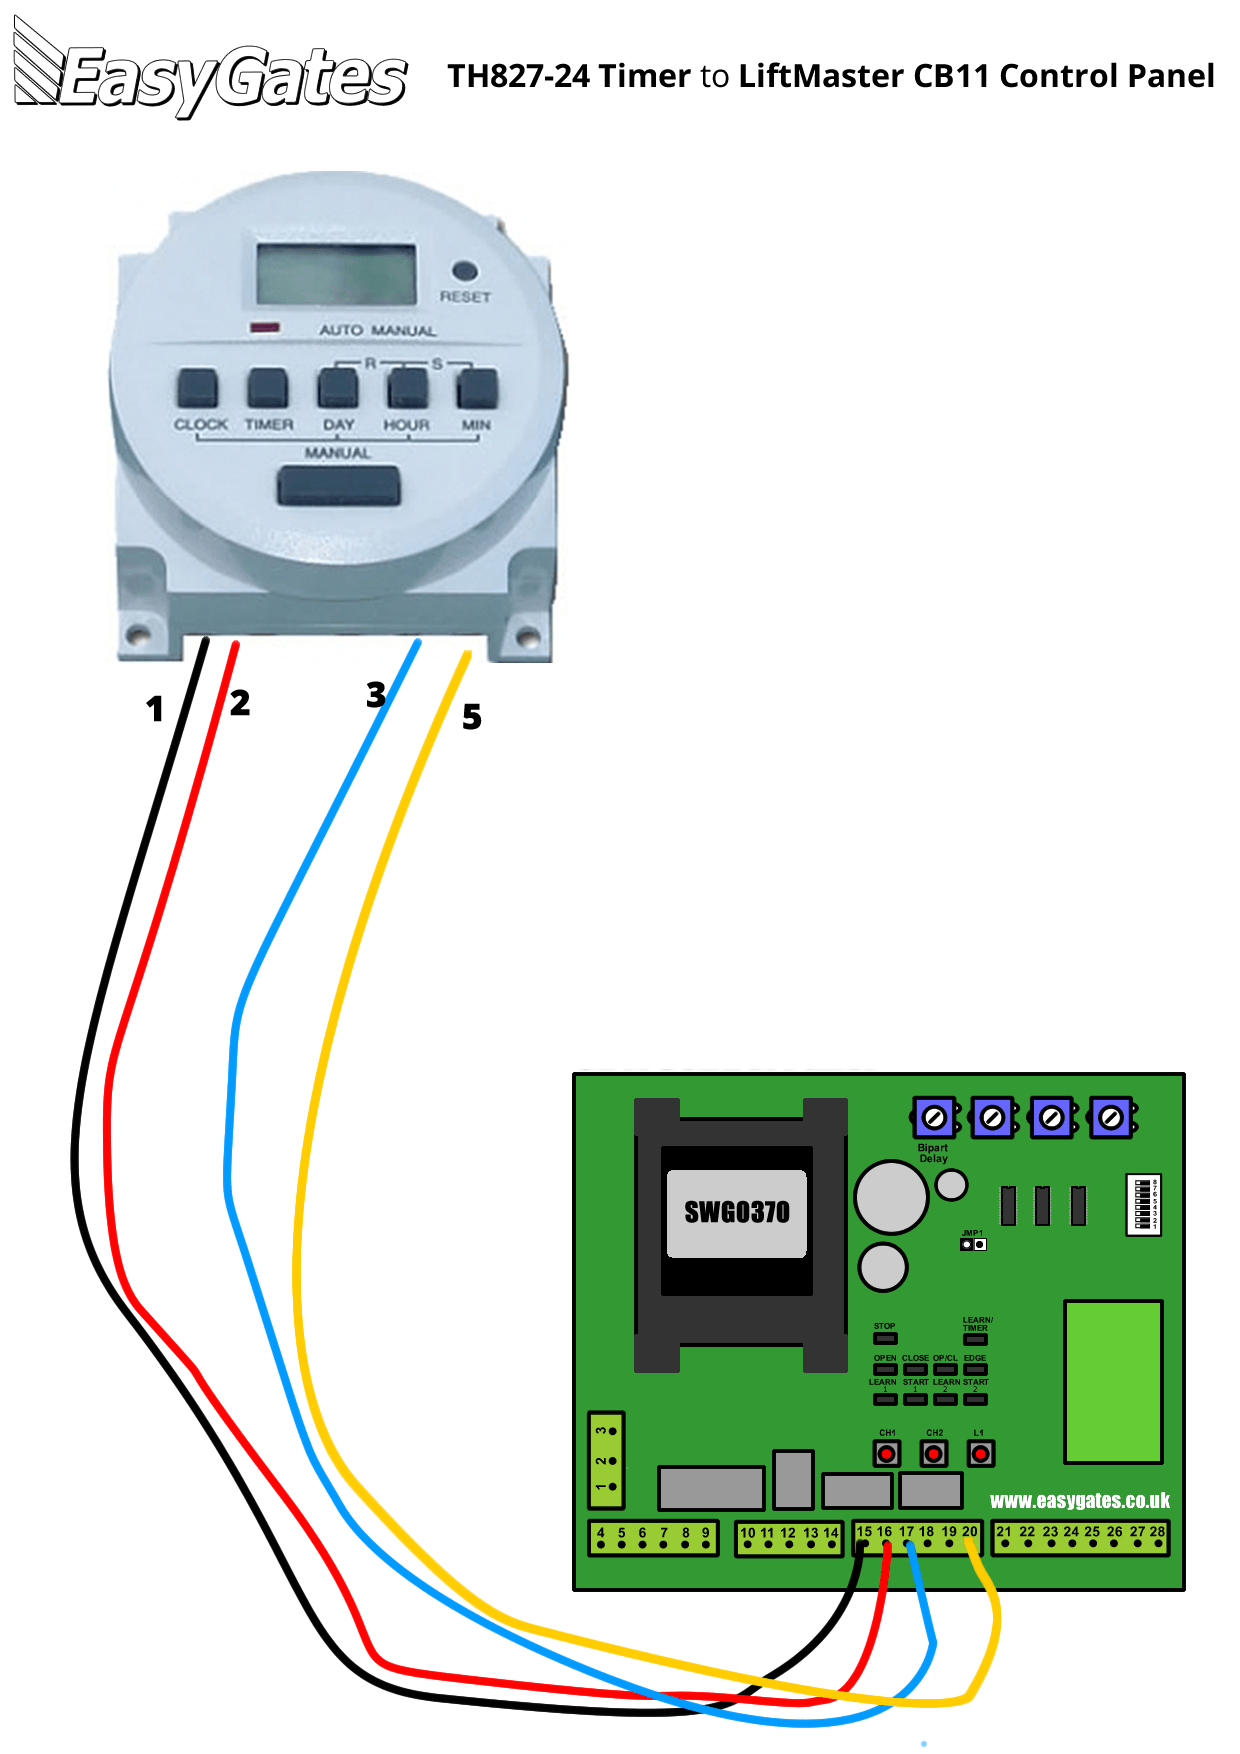 wiring diagram for connecting th827 24 timer to liftmaster cb11 rh manuals easygates co uk MAF Sensor Wiring Diagram Garage Door Safety Sensor Diagram